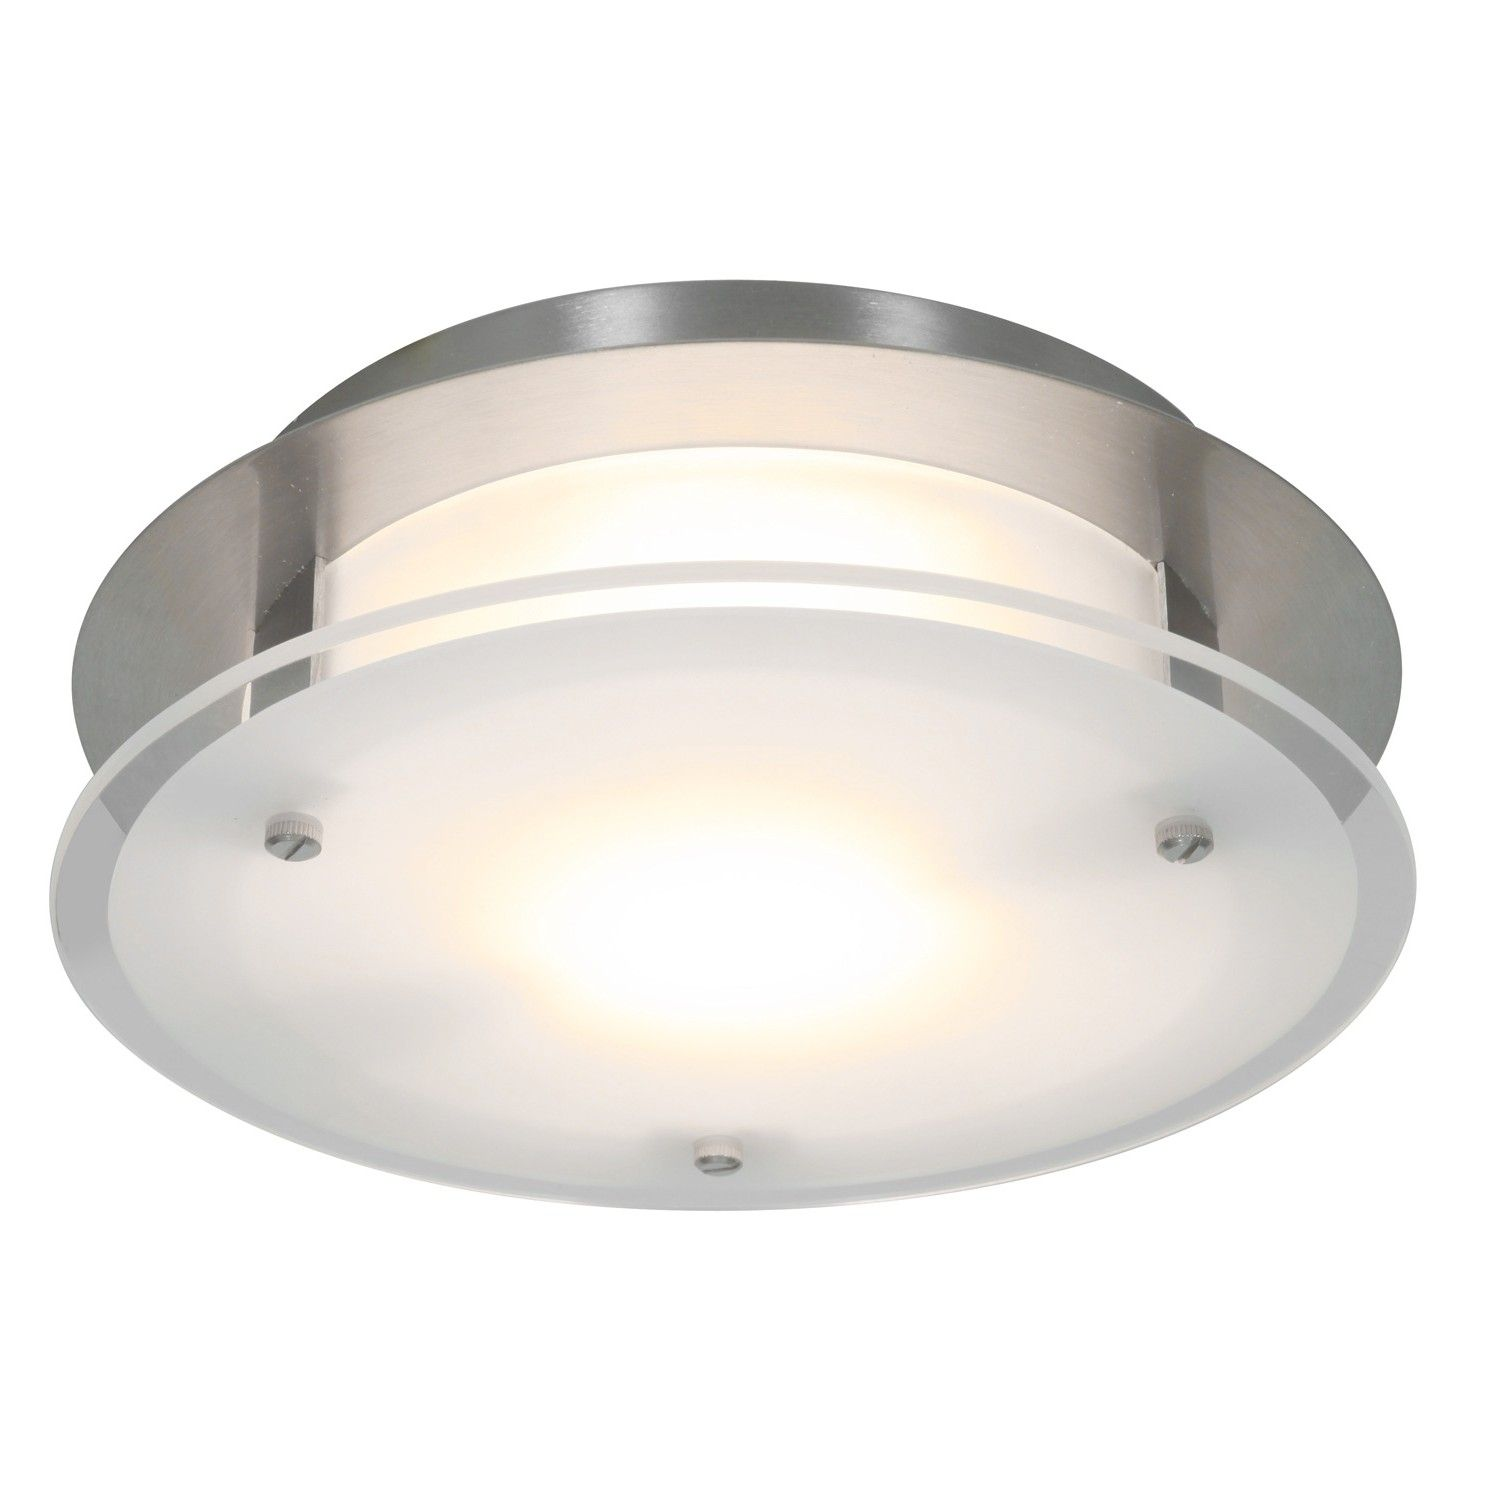 Bathroom Light Fans Bath Fans Bathroom Fans Lights Exhaust Fans From Ductless Bathroom Fan With Light Bathroom Fan Light Exhaust Fan Light Fan Light